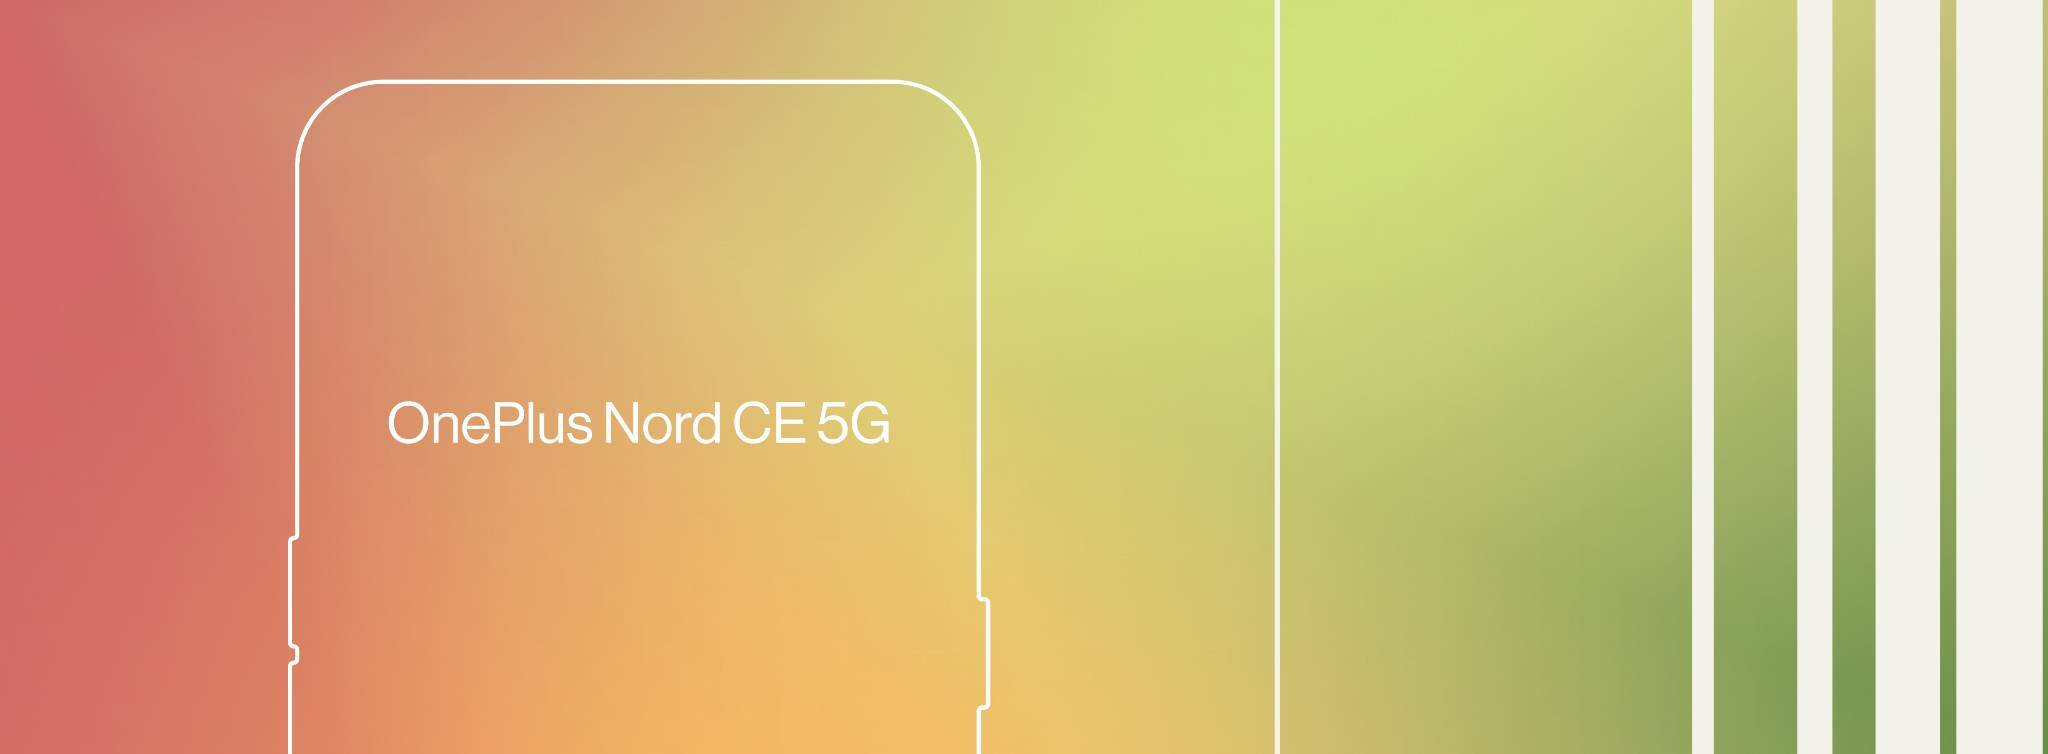 OnePlus Nord CE 5G contest